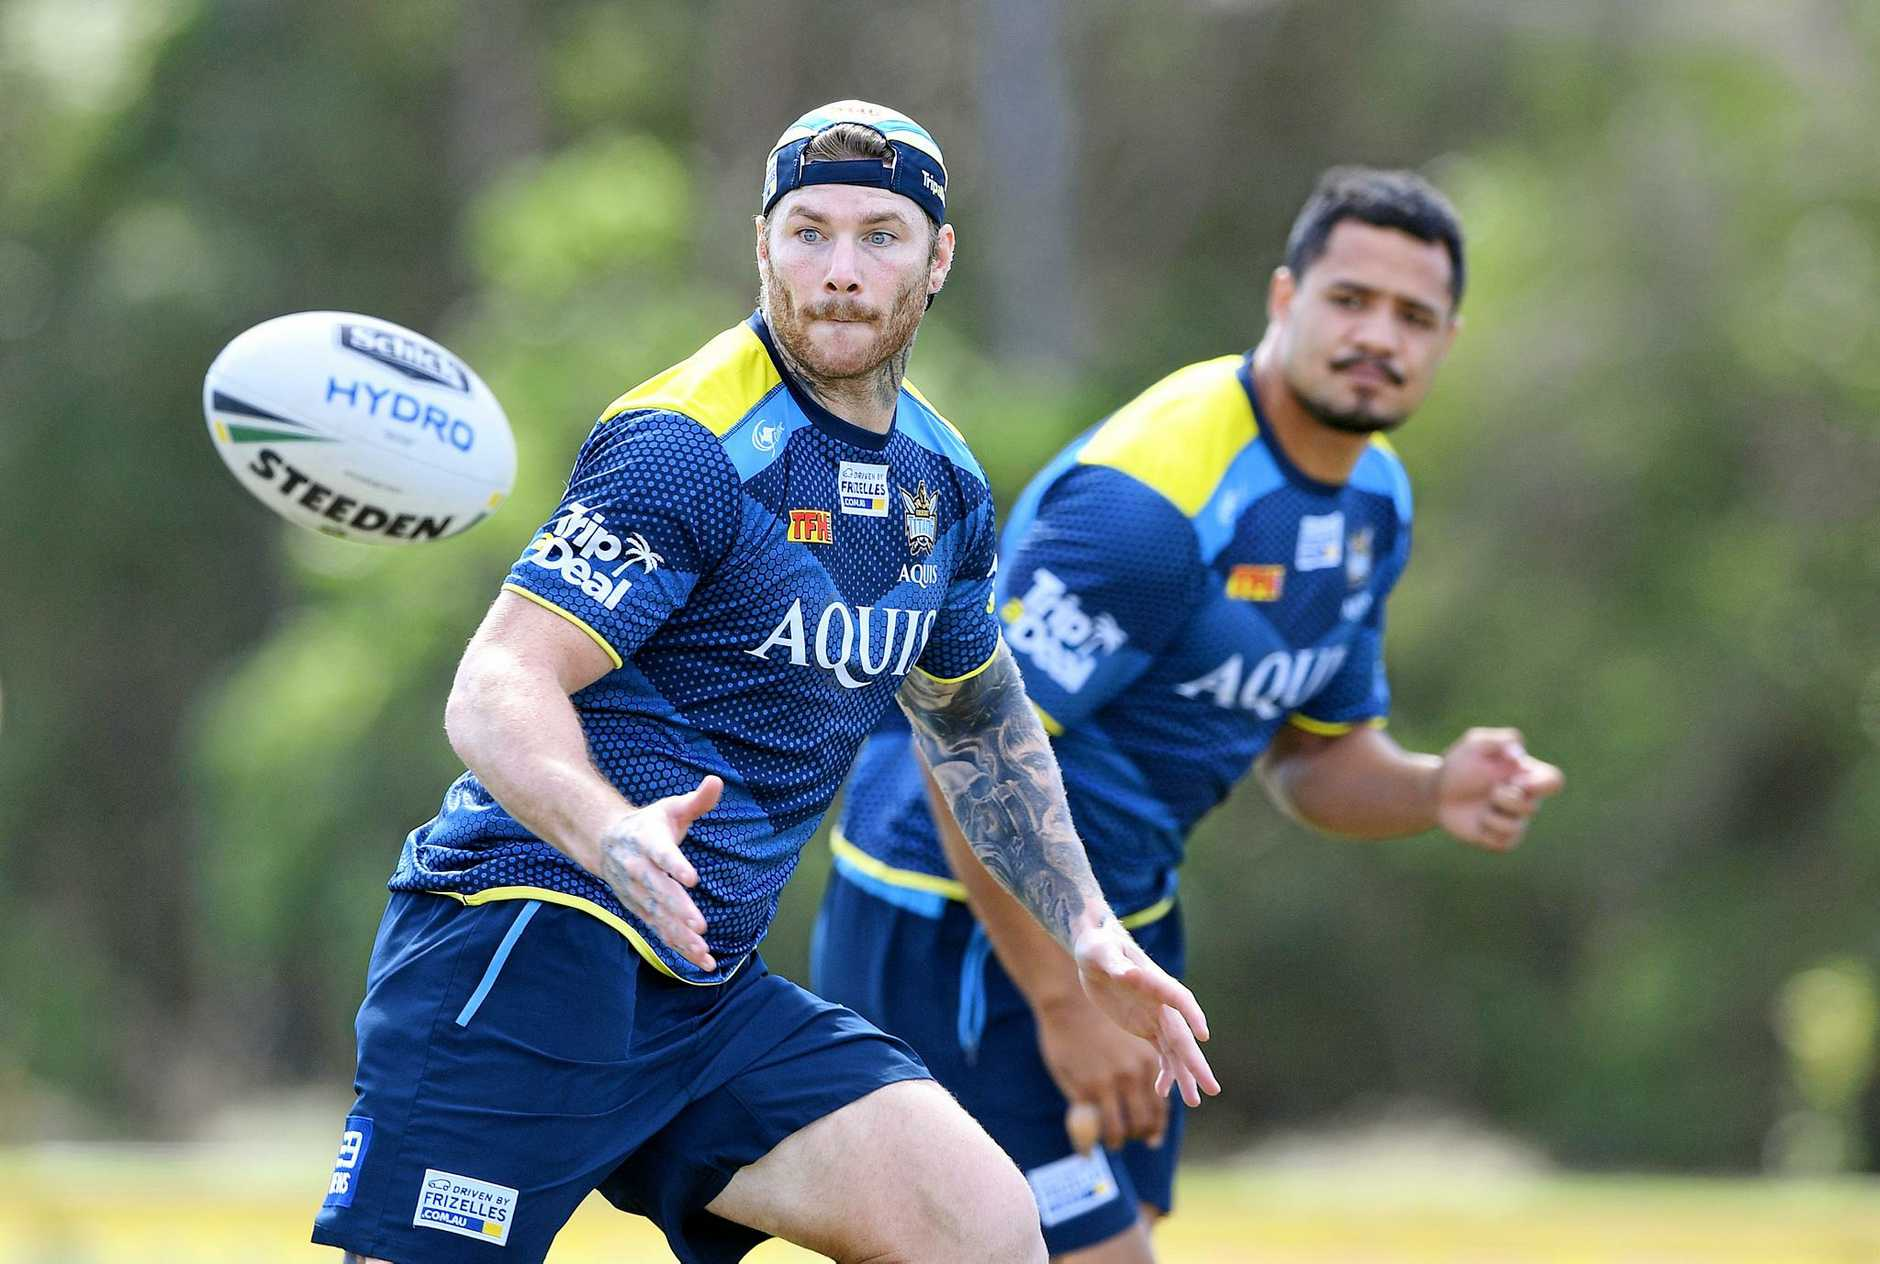 DETERMINED: Gold Coast Titans forward and former Kingaroy Red Ant Chris McQueen has brushed off criticism ahead of his debut representing England.